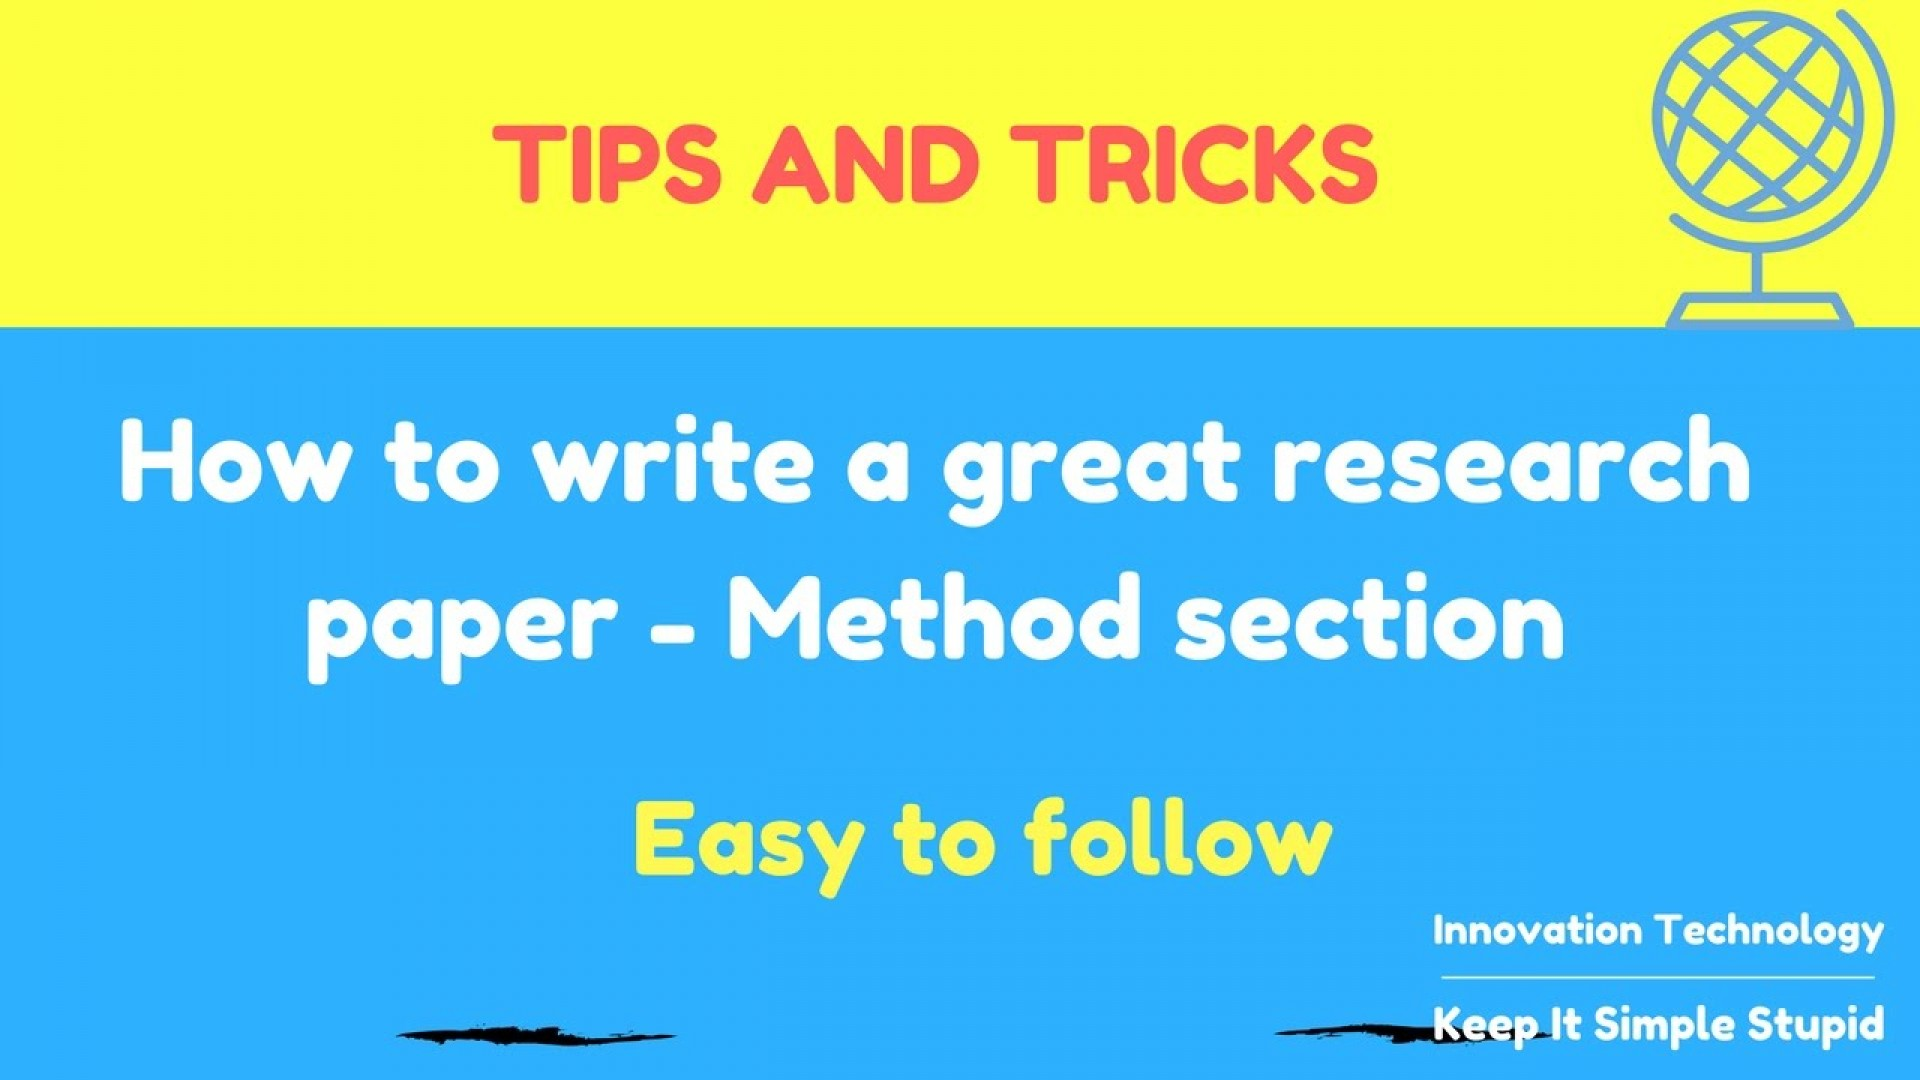 025 Methods Section In Research Paper Fearsome Results Example Social Science How To Write 1920